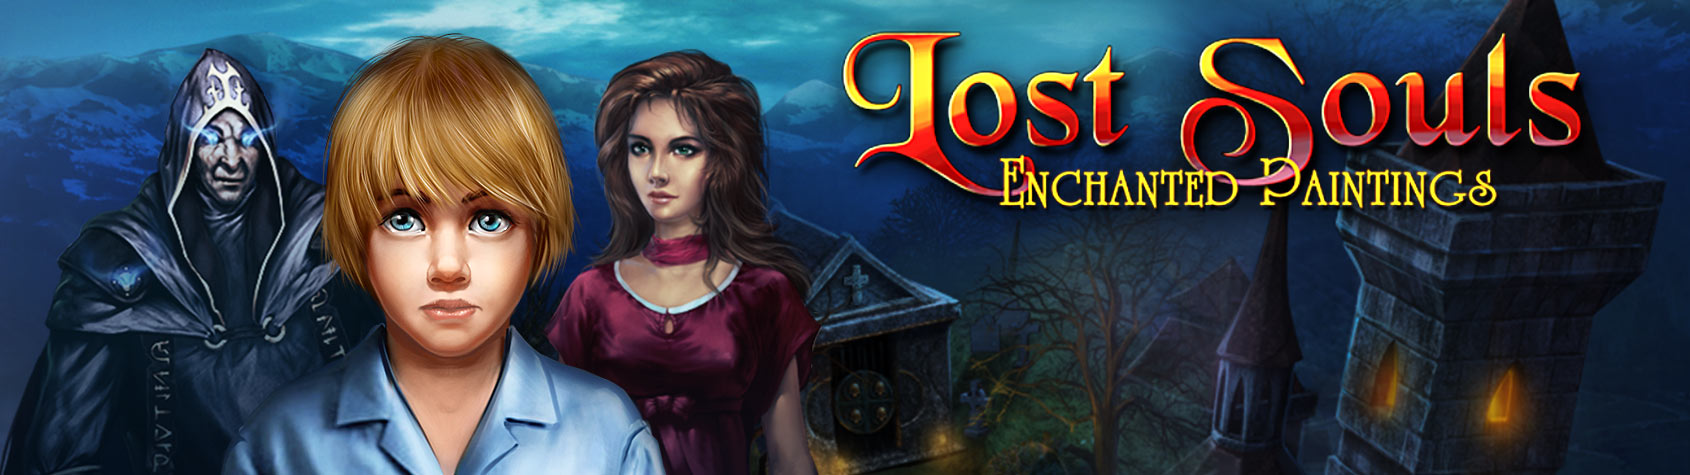 Lost Souls: Enchanted Paintings HD